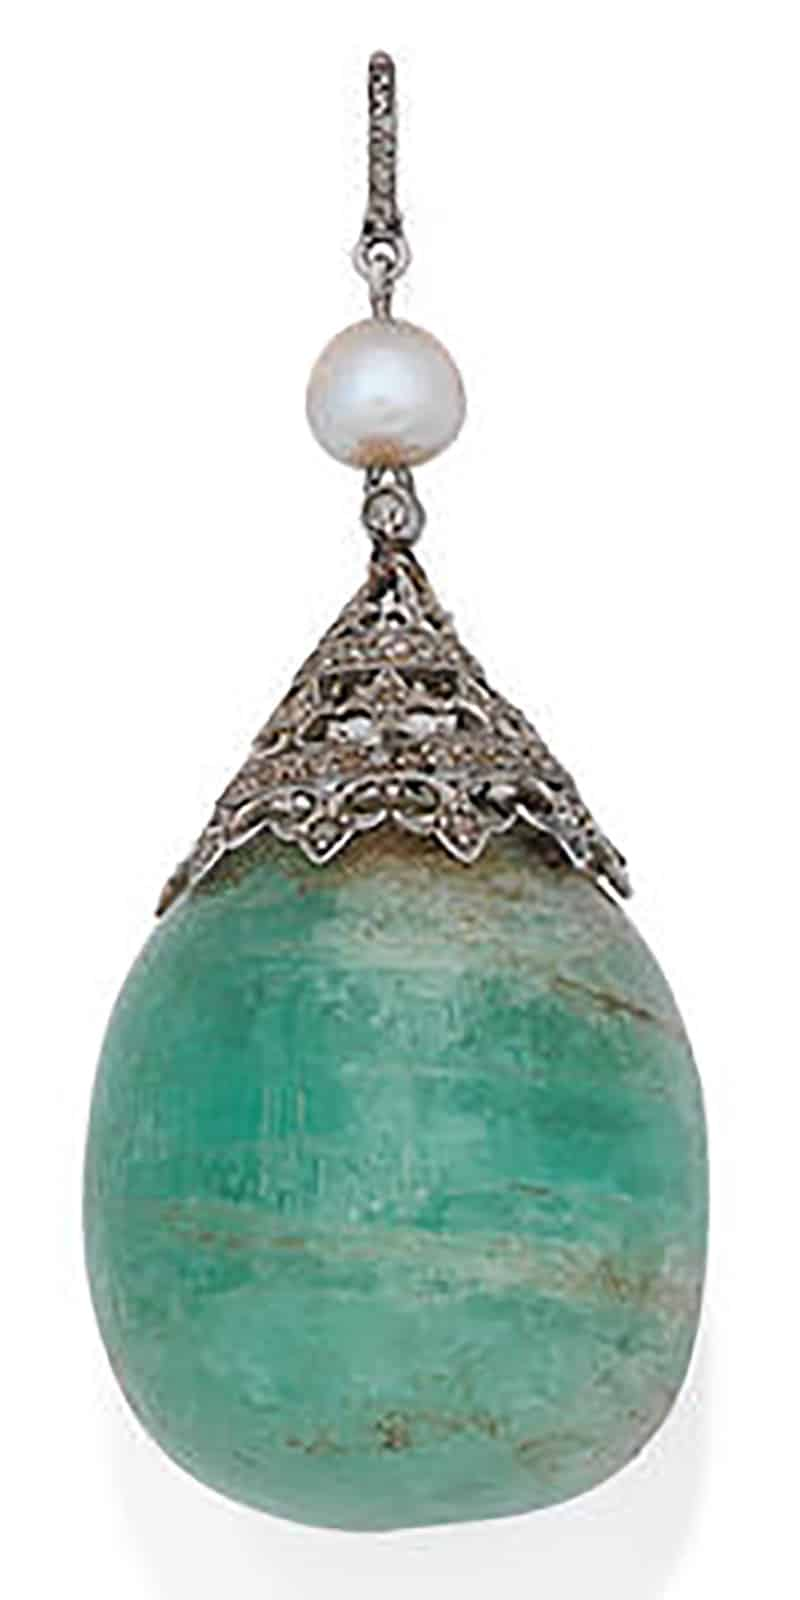 LOT 137 - AN EMERALD, PEARL AND DIAMOND PENDANT